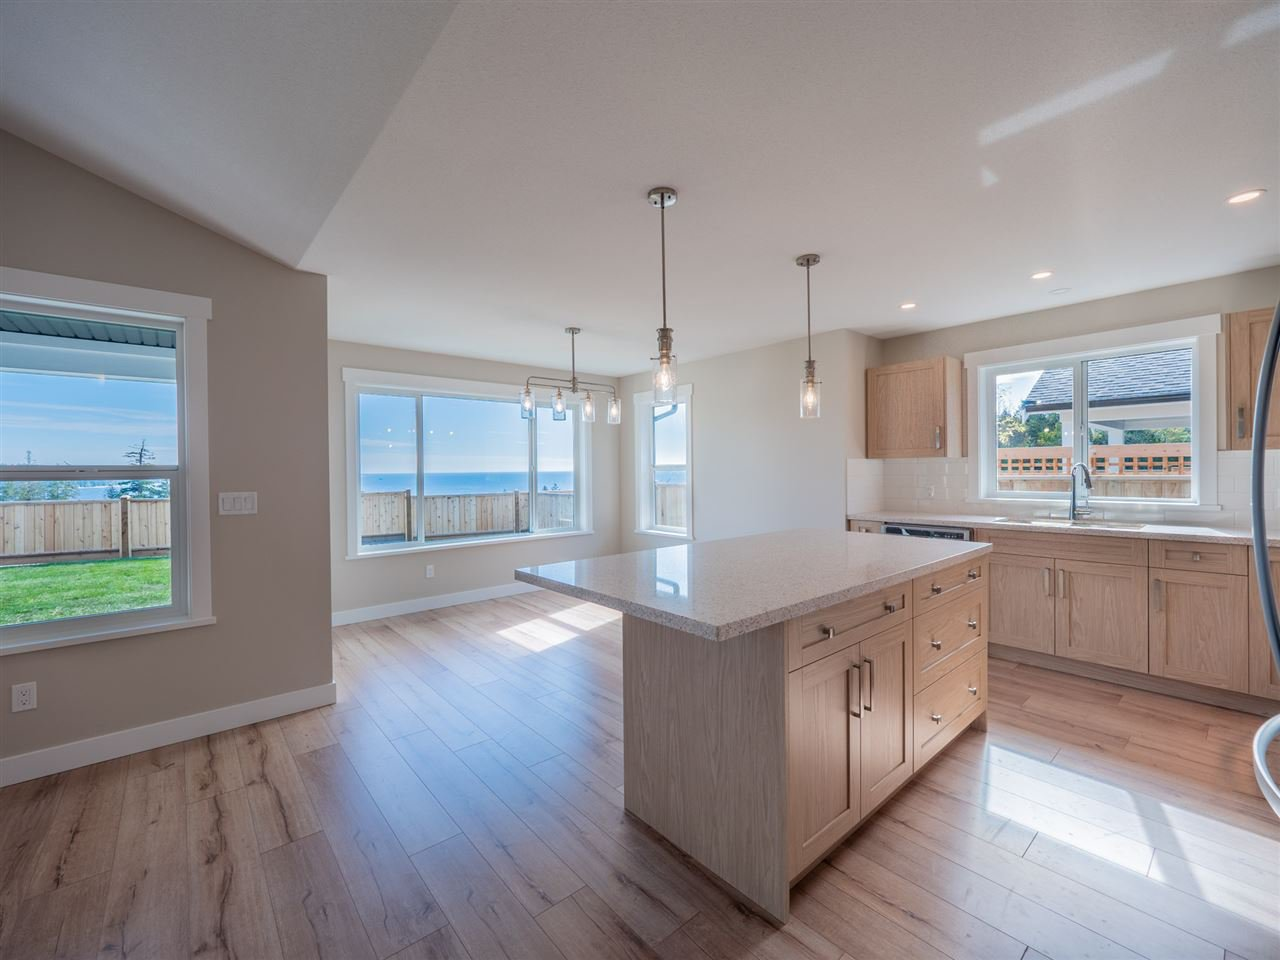 """Photo 10: Photos: 5634 KINGBIRD Crescent in Sechelt: Sechelt District House for sale in """"SilverStone Heights Phase2"""" (Sunshine Coast)  : MLS®# R2466073"""